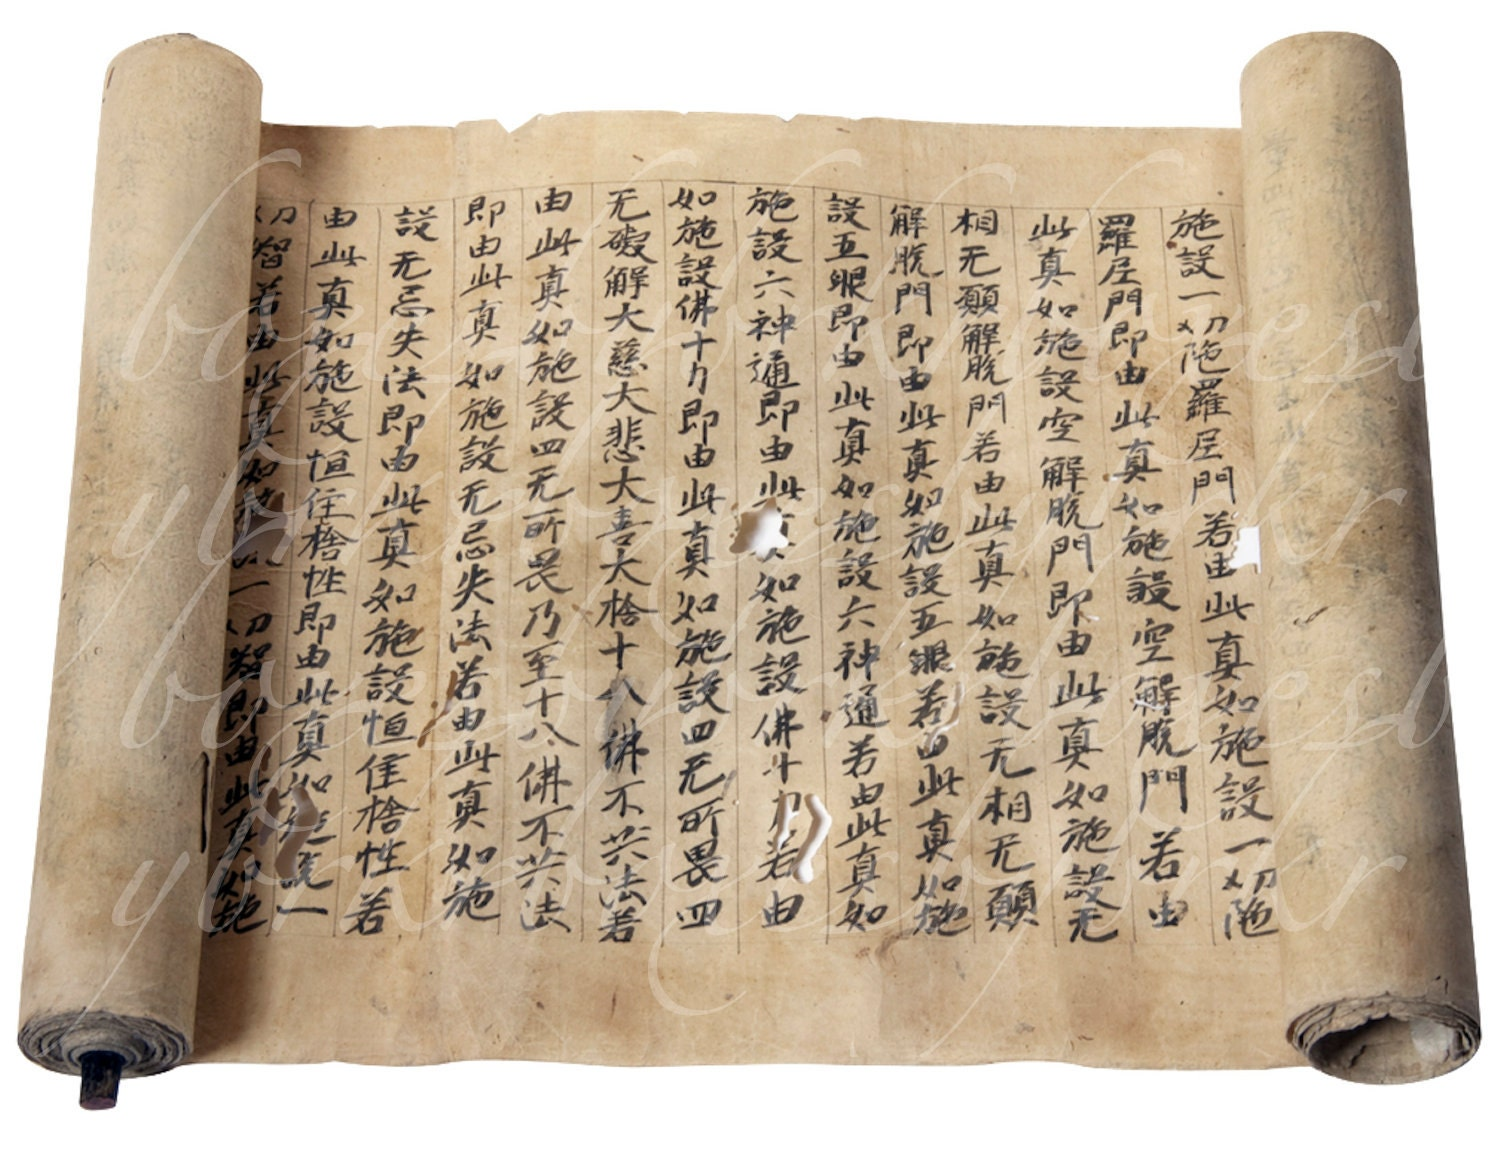 ancient japan essay Free essays available online are good but they will not follow the guidelines of your particular writing assignment if you need a custom term paper on world history: the showa restoration in japan, you can hire a professional writer here to write you a high quality authentic essay.